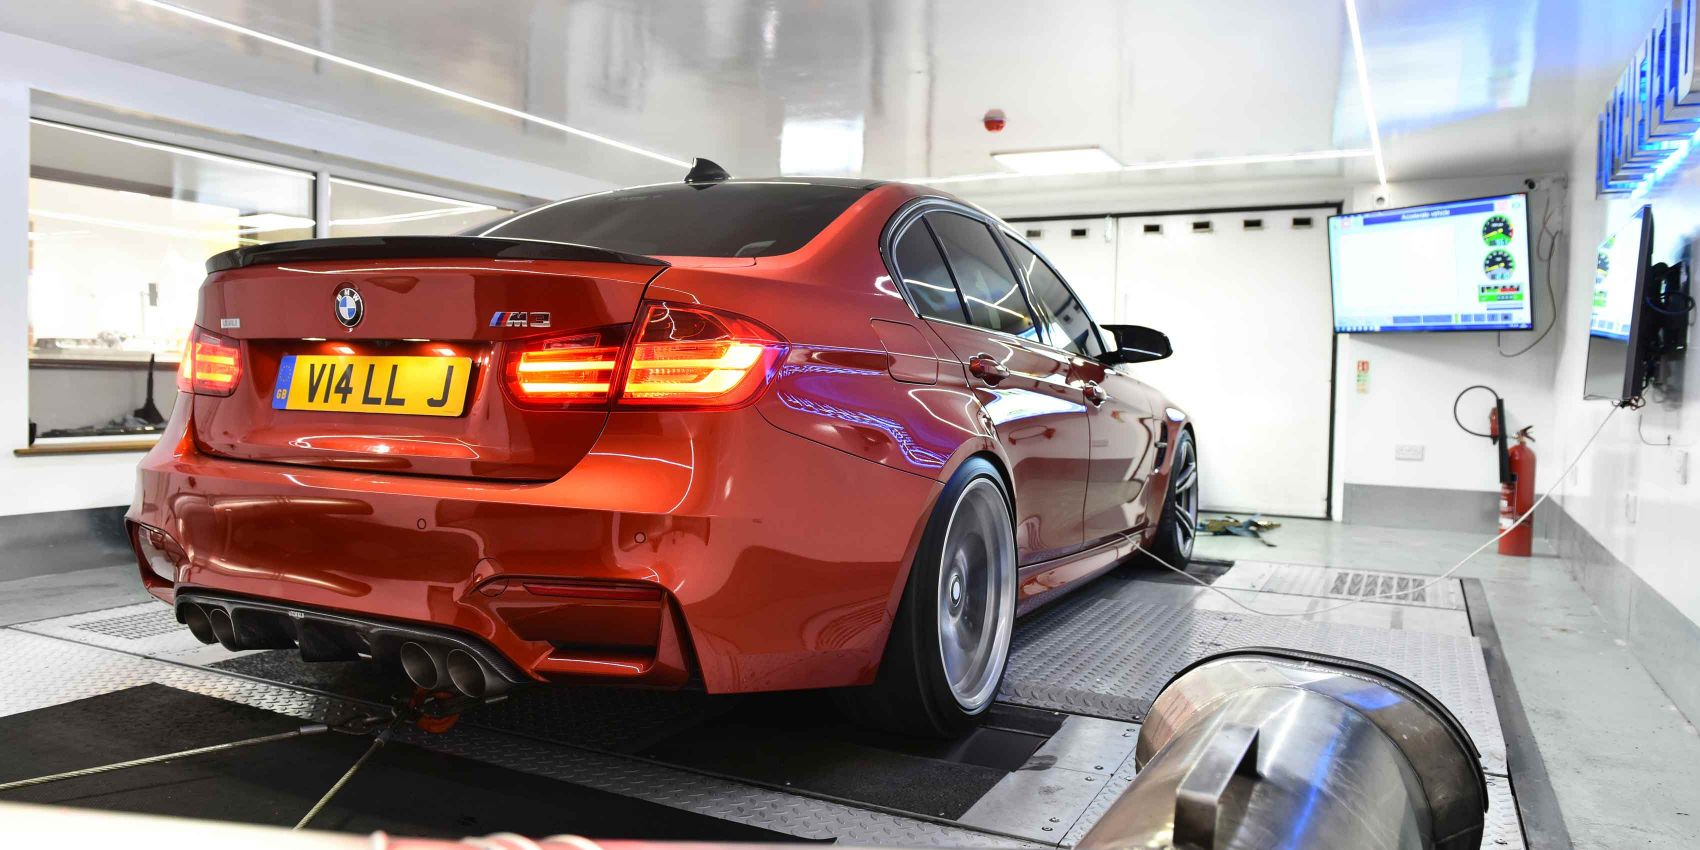 The Amazing Benefits From Bmw Car Tuning